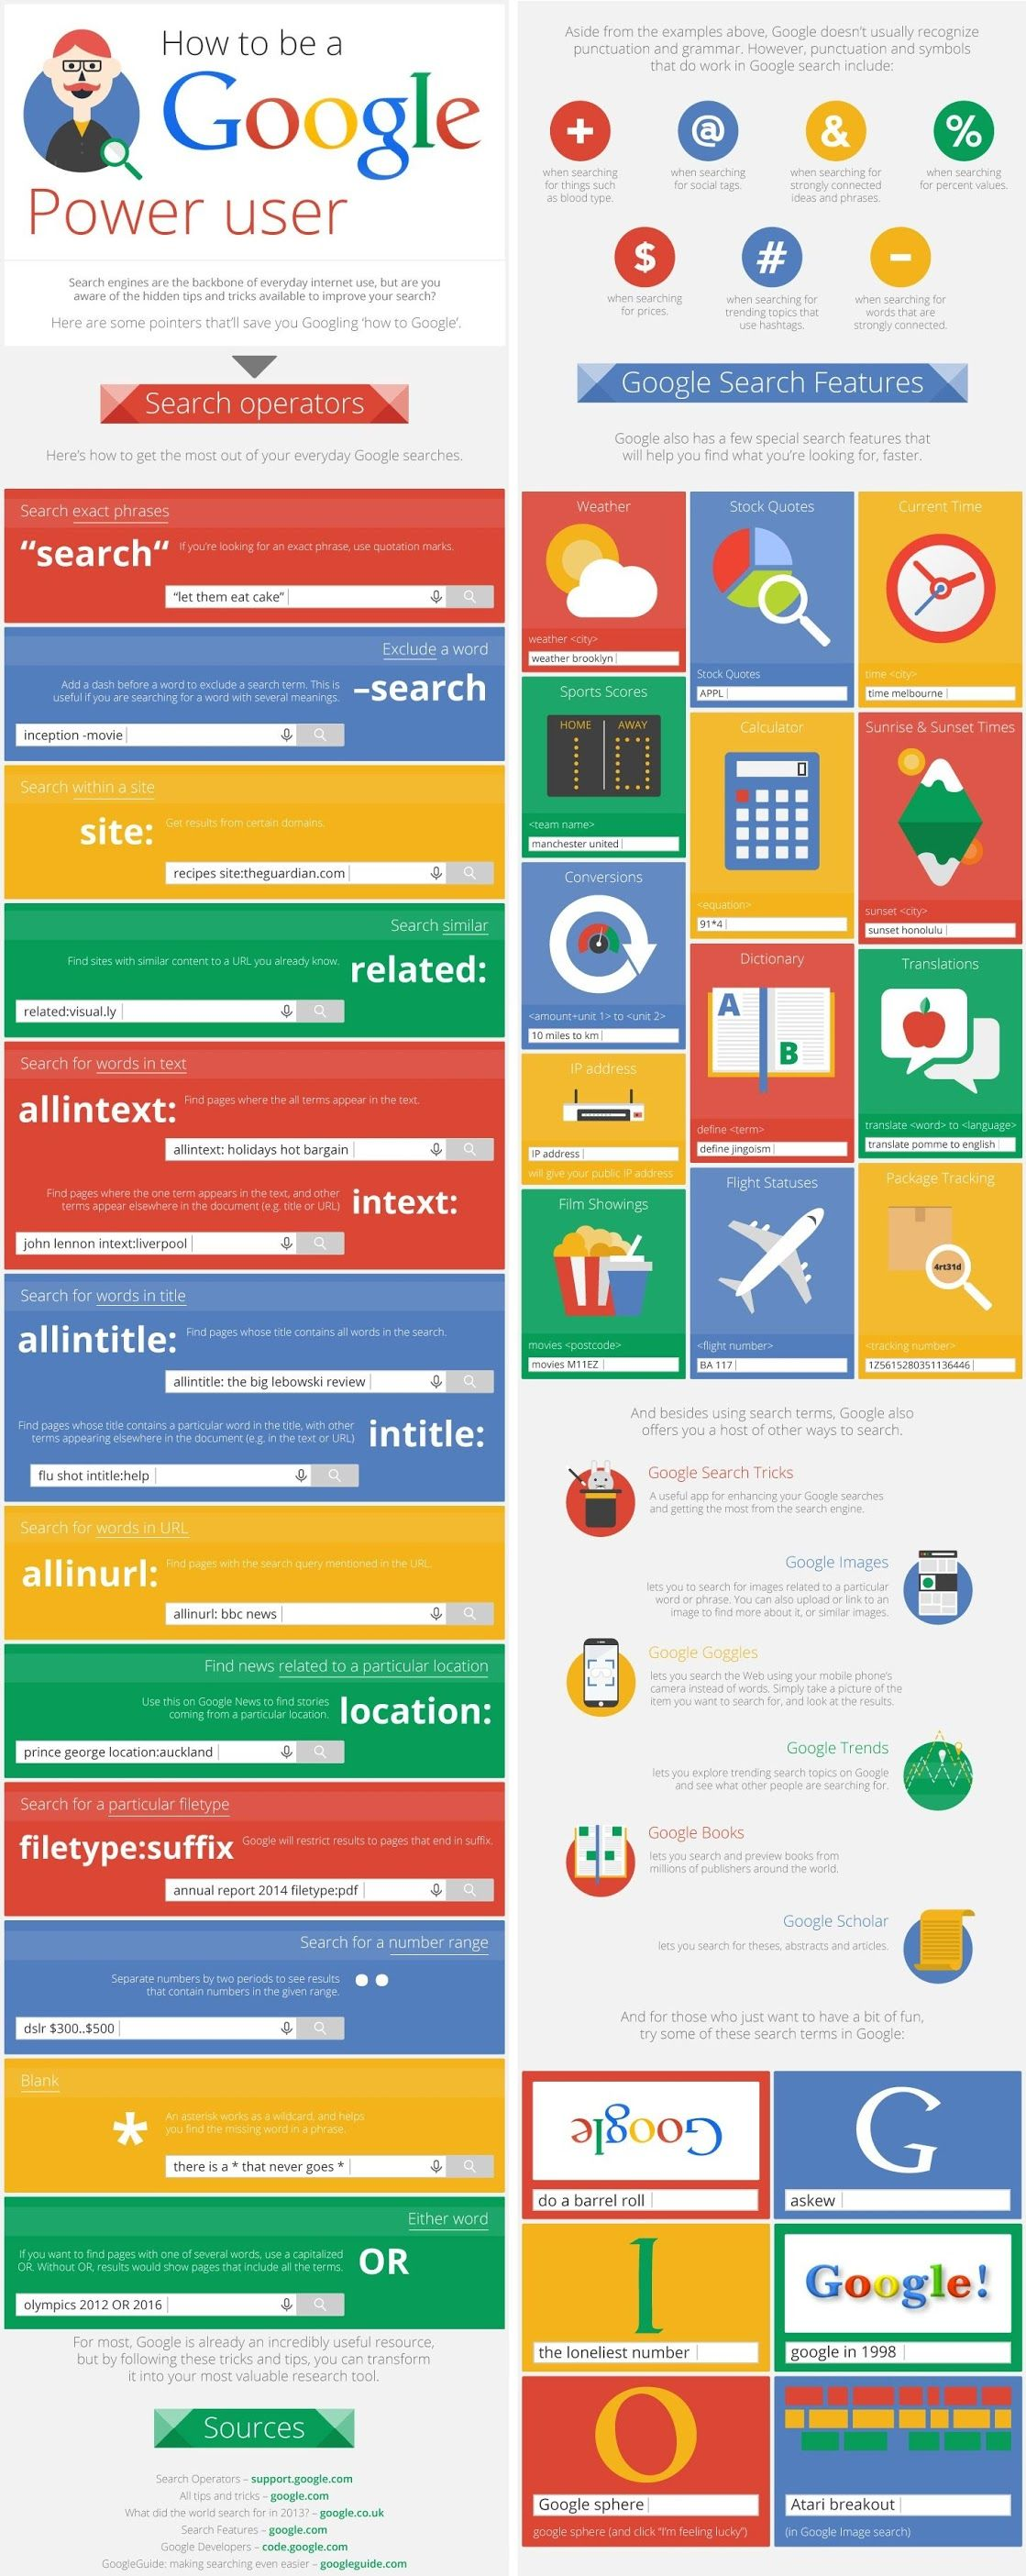 How To Be A Google Power User Google Apps For Education Gafe Infographic Educational Technology Google Education Instructional Technology